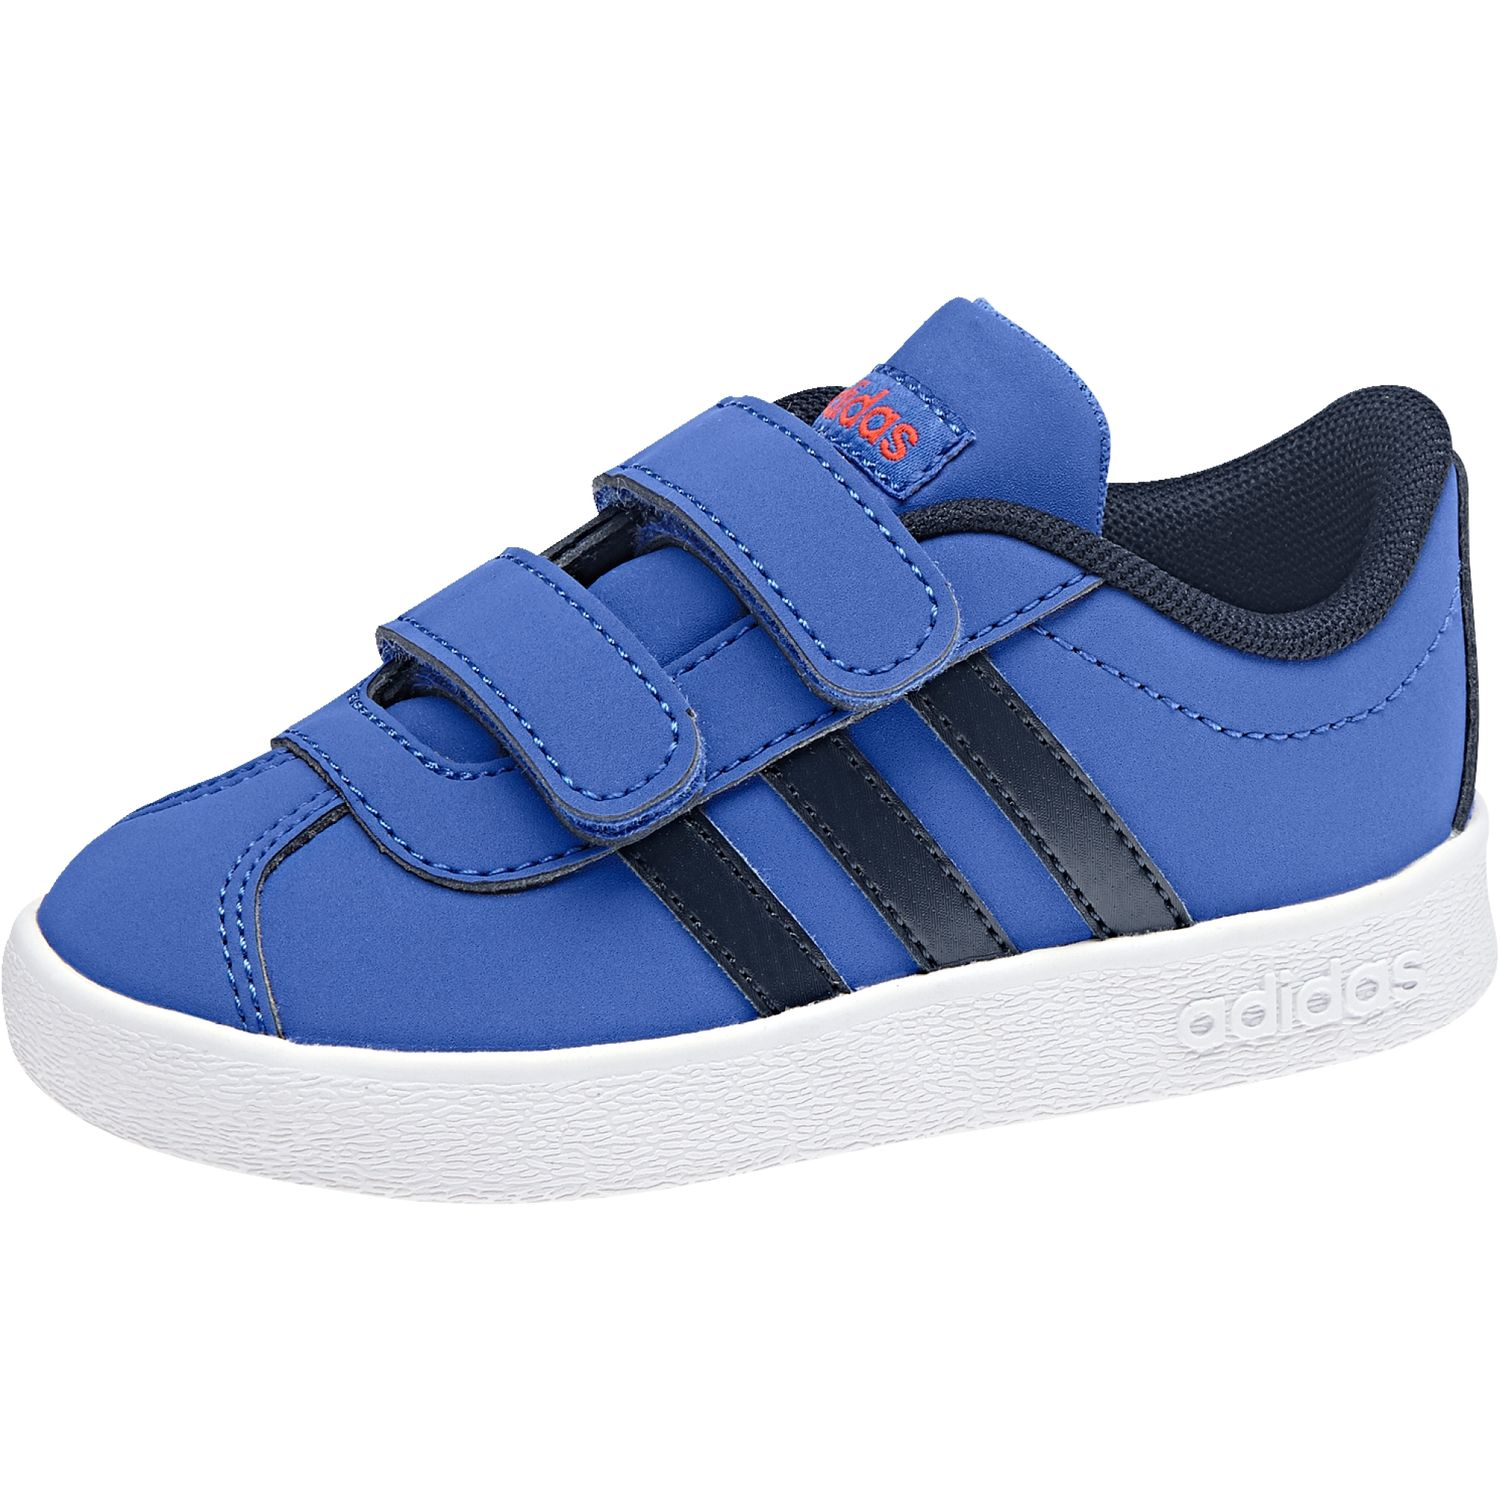 watch 62aa3 2ec10 adidas performance VL COURT 2.0 CMF I unisex kids shoes DB1531 HI-RES blue